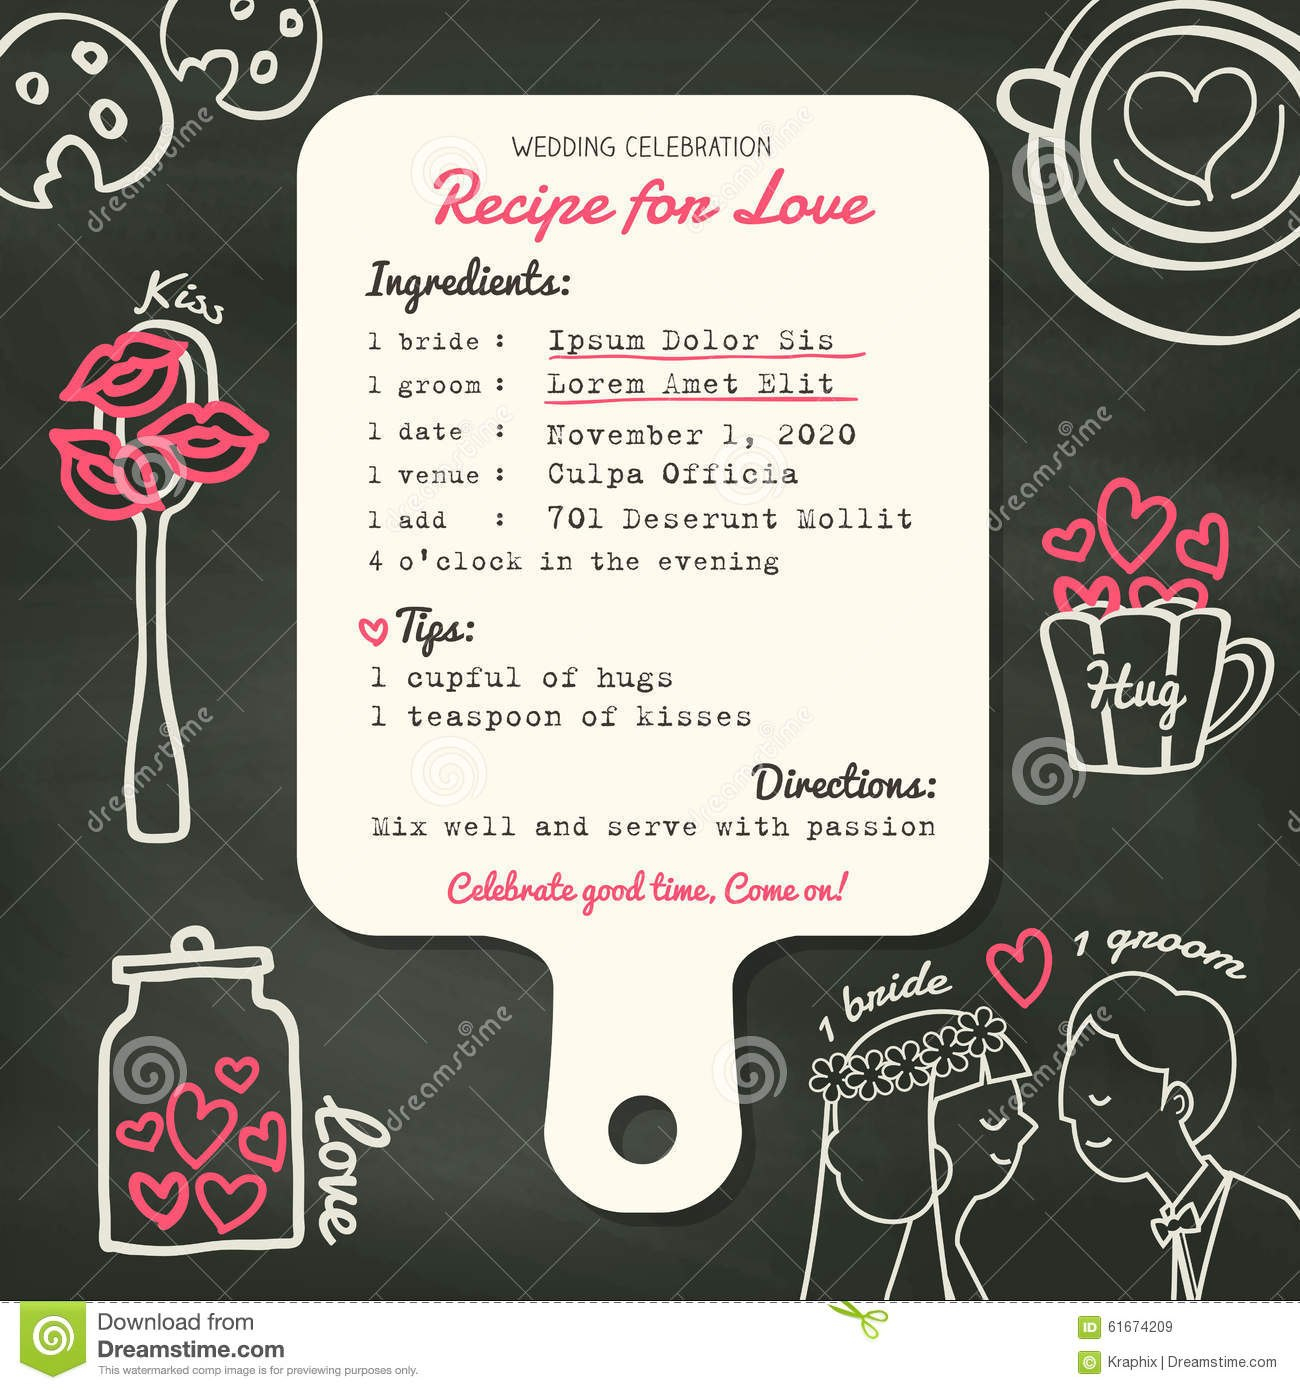 Recipe Card Creative Wedding Invitation Design With Cooking Concept Pertaining To Recipe Card Design Template